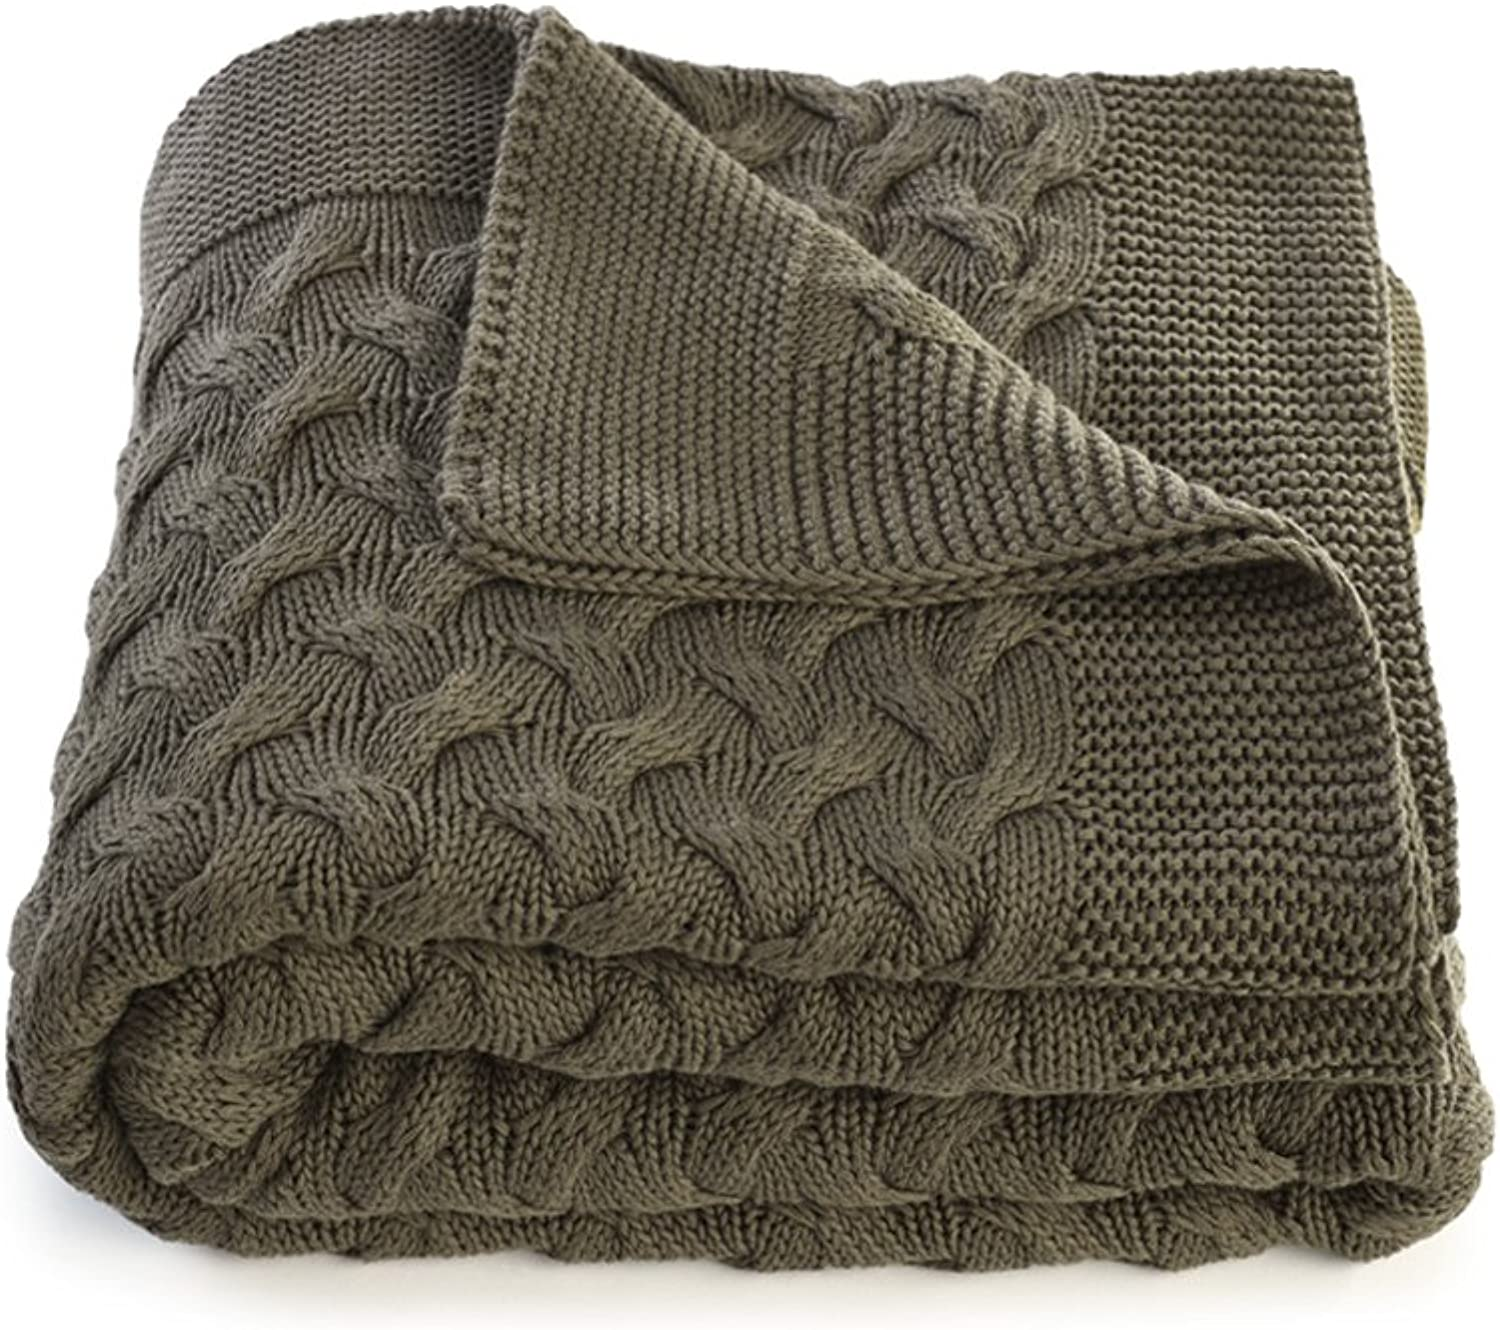 Soft 100% Cotton Throw Blanket for Couch Sofa Bed Green 51 x 67 Inch